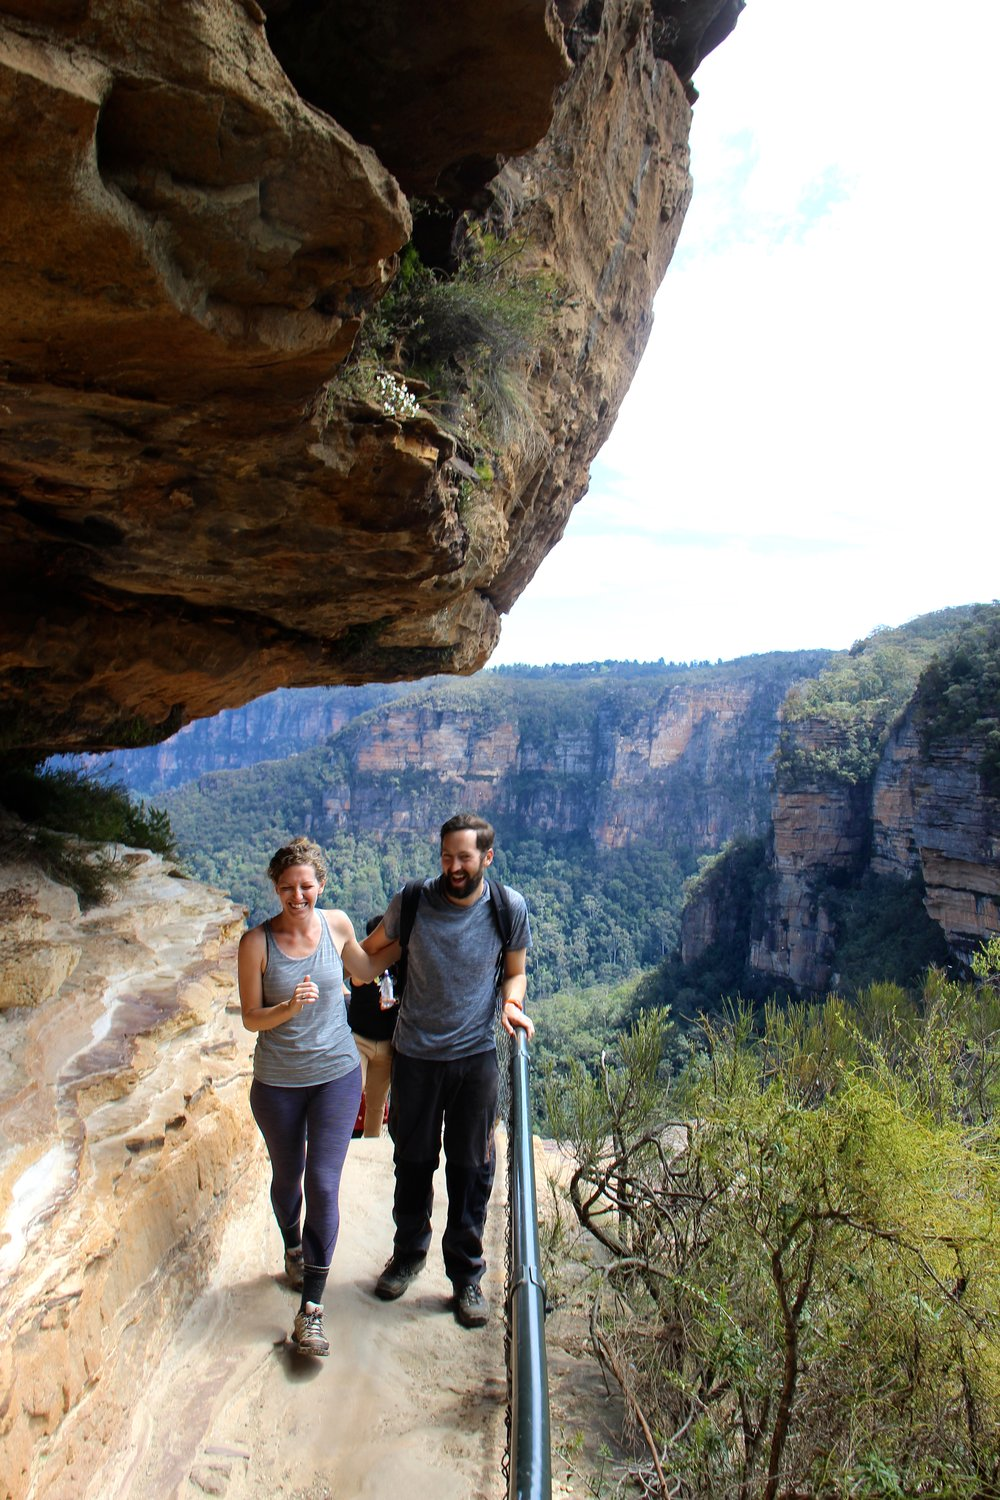 My now-fiance, Mike and I taking in the beauty of the Blue Mountains, a two hour drive from our beachside home in the Northern Beaches of Sydney.